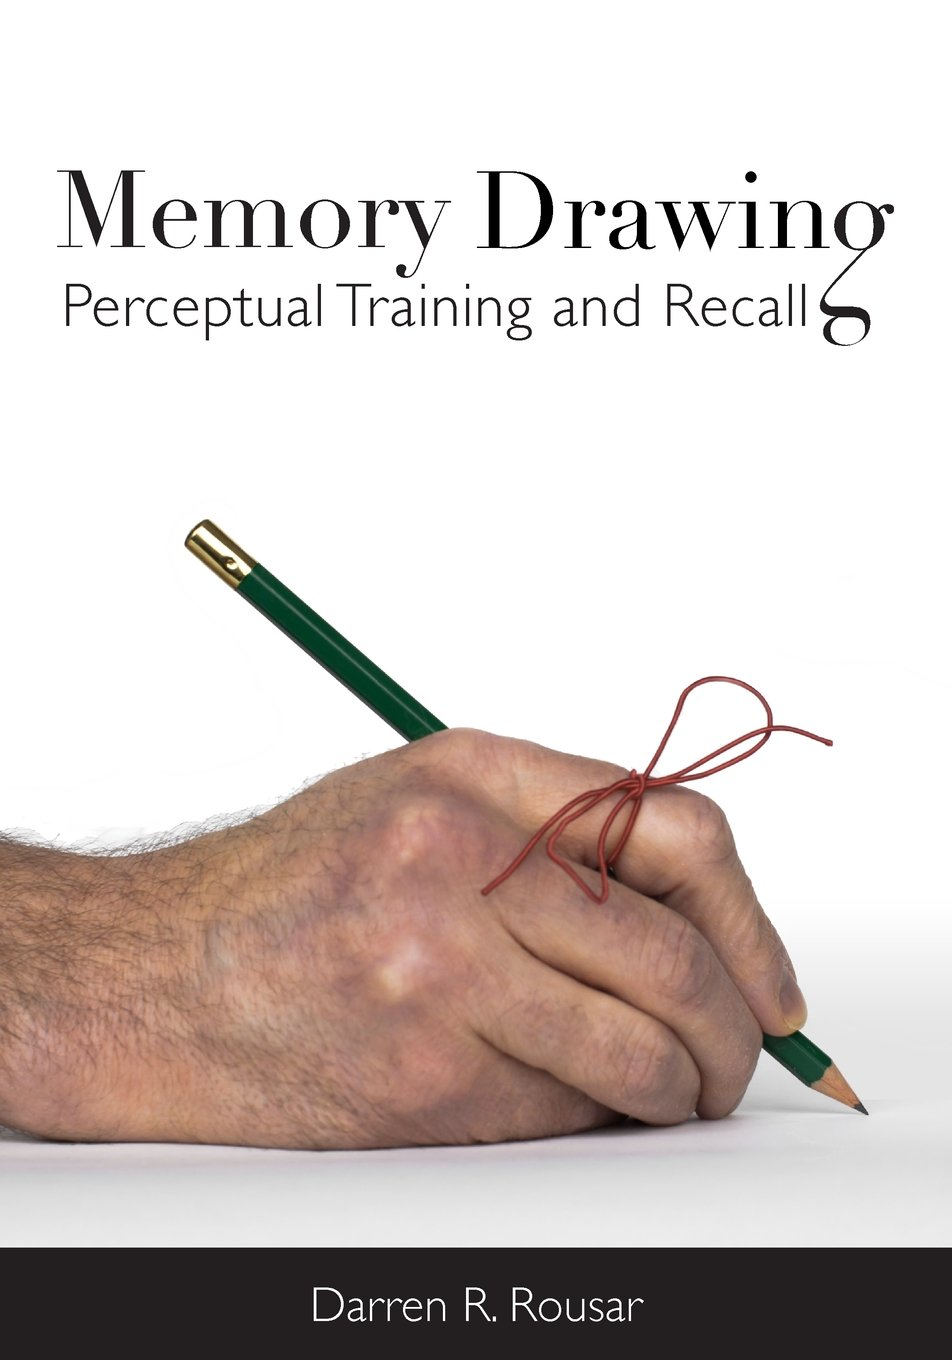 Memory Drawing Perceptual Training Recall product image